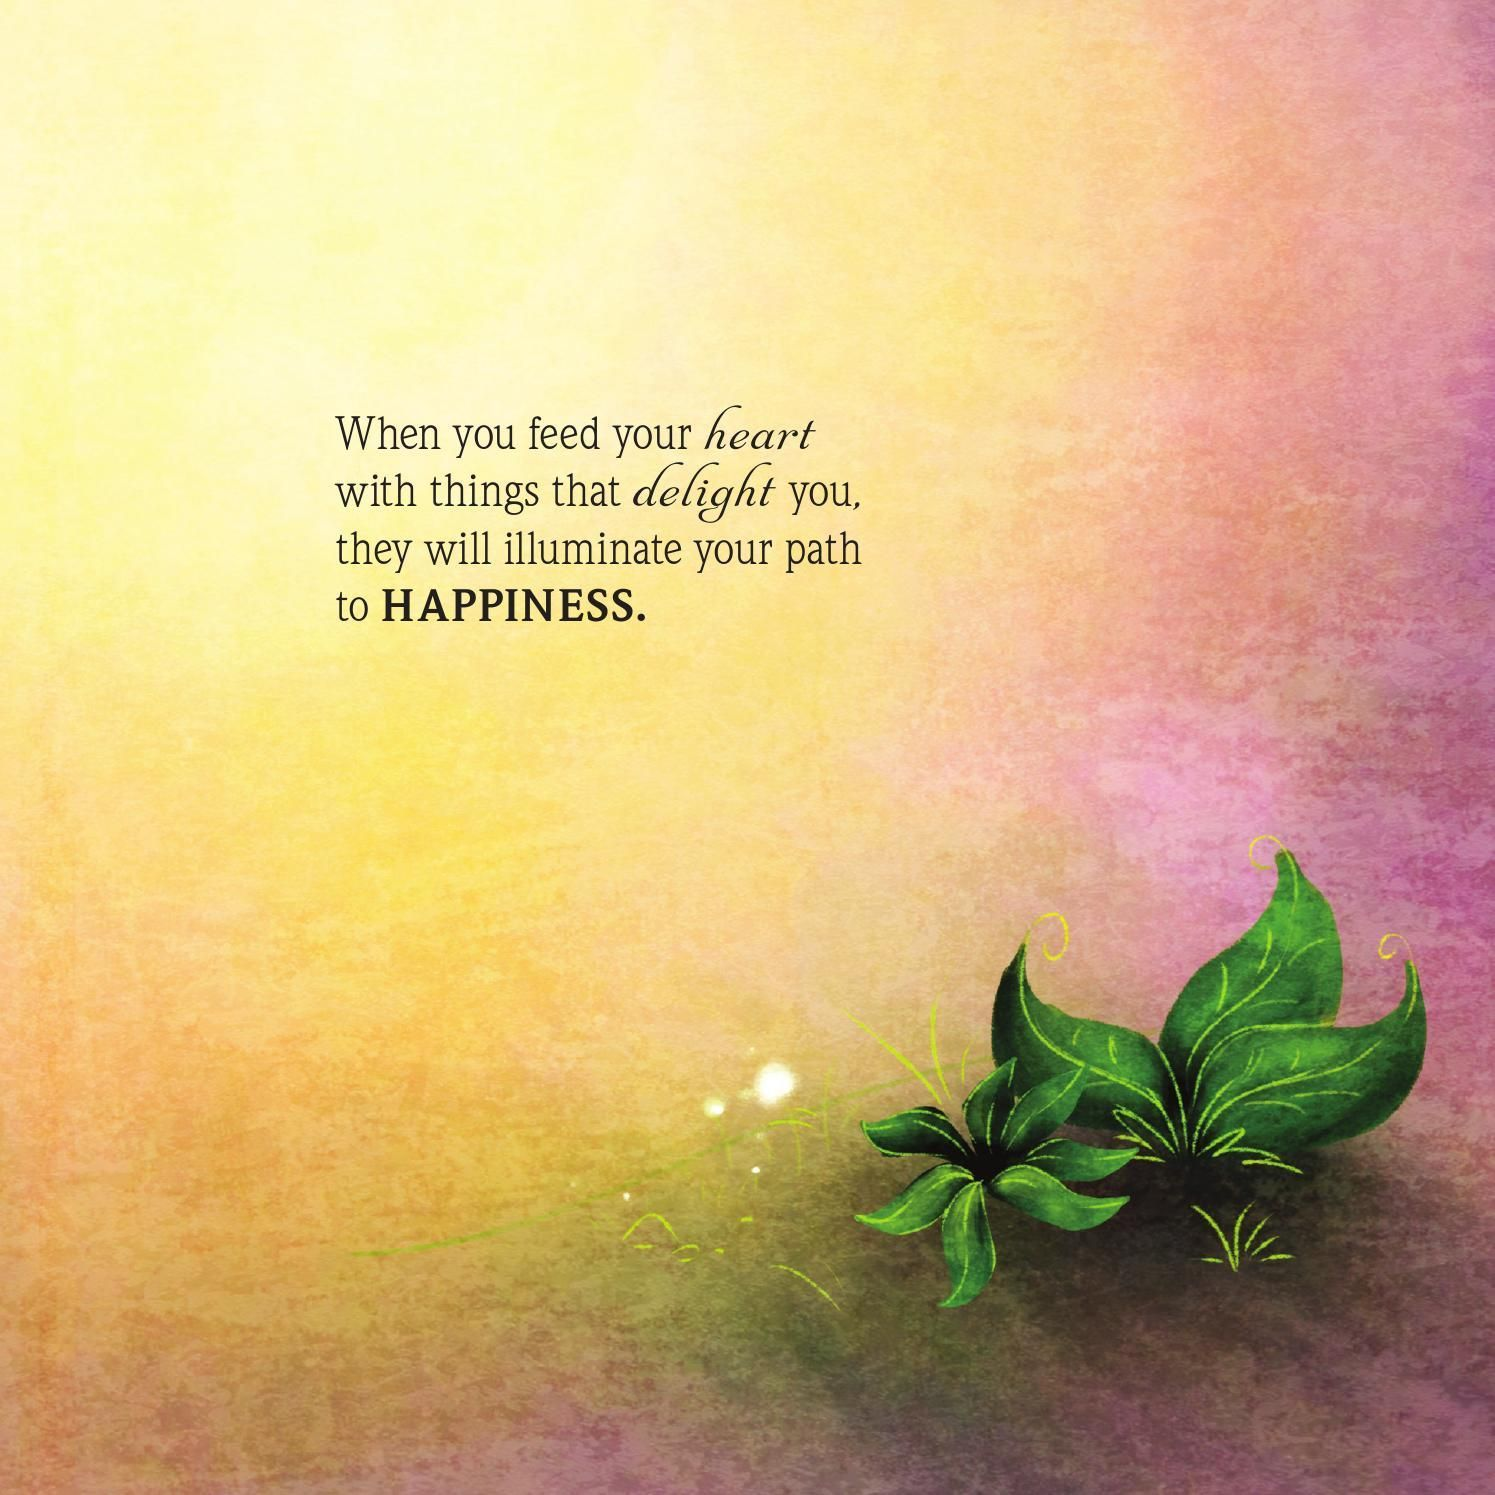 #ClippedOnIssuu from Simple Truths: In the Garden of Happiness